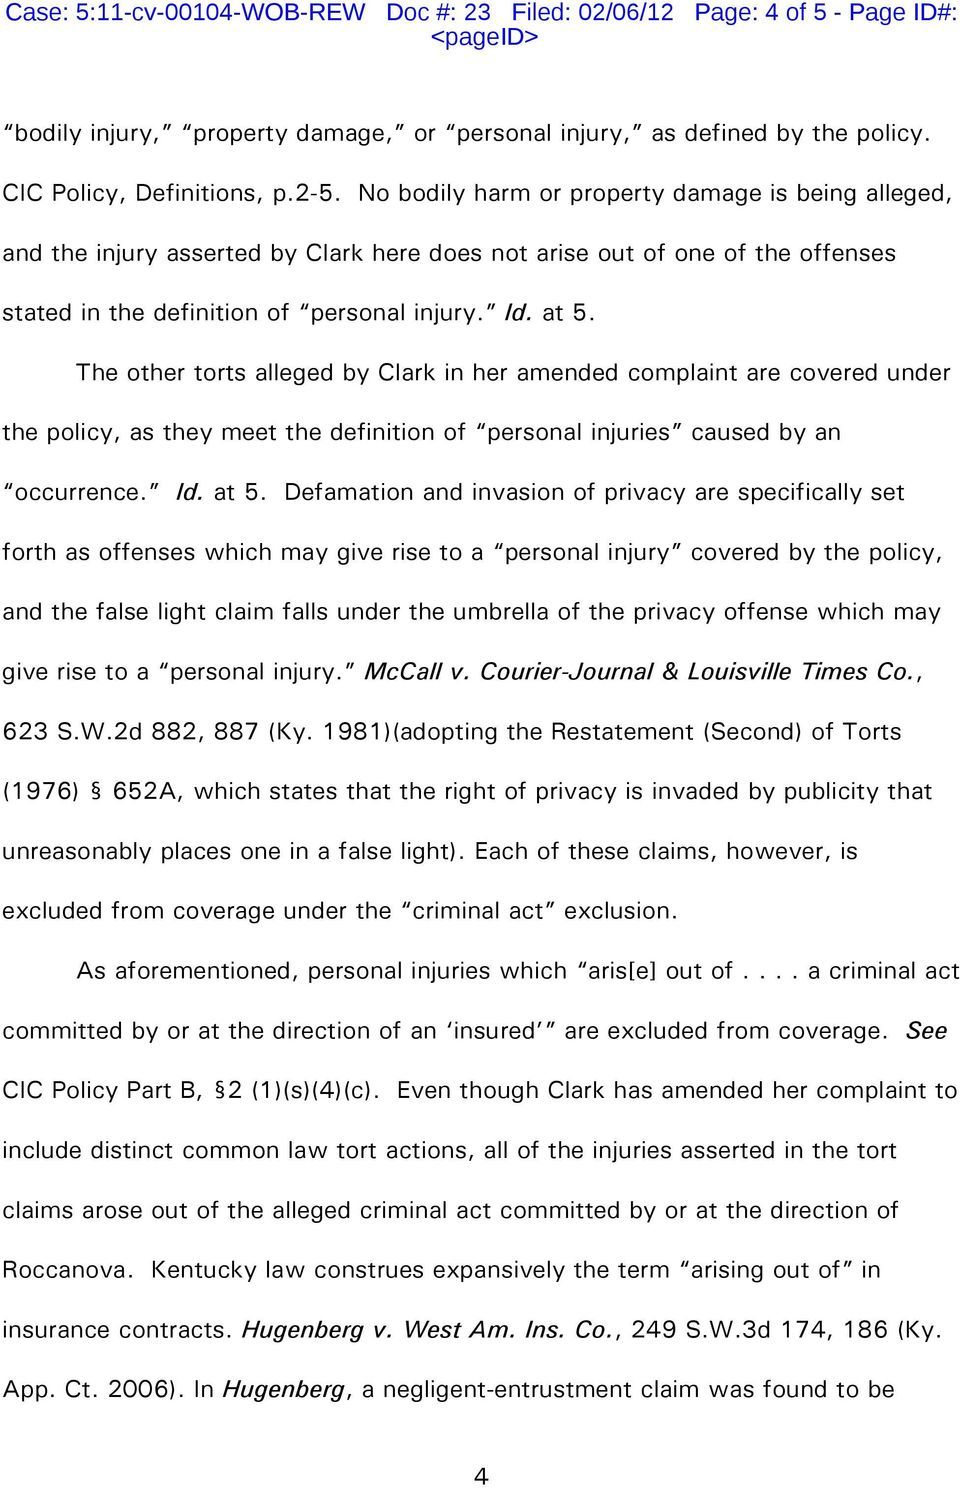 The other torts alleged by Clark in her amended complaint are covered under the policy, as they meet the definition of personal injuries caused by an occurrence. Id. at 5.